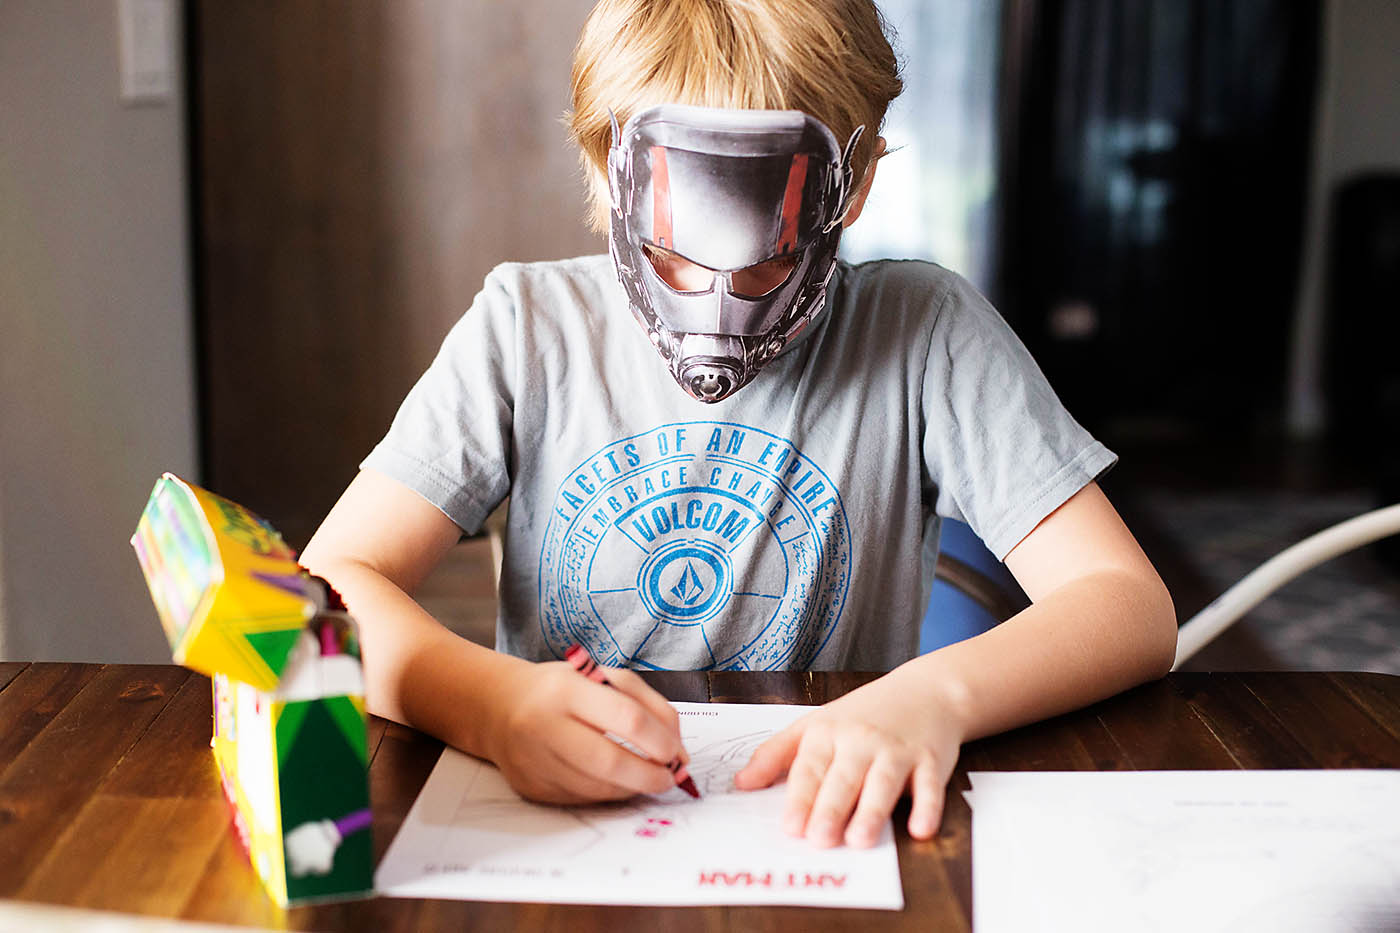 Ant Man Printable Activities Coloring Pages All for the Boys